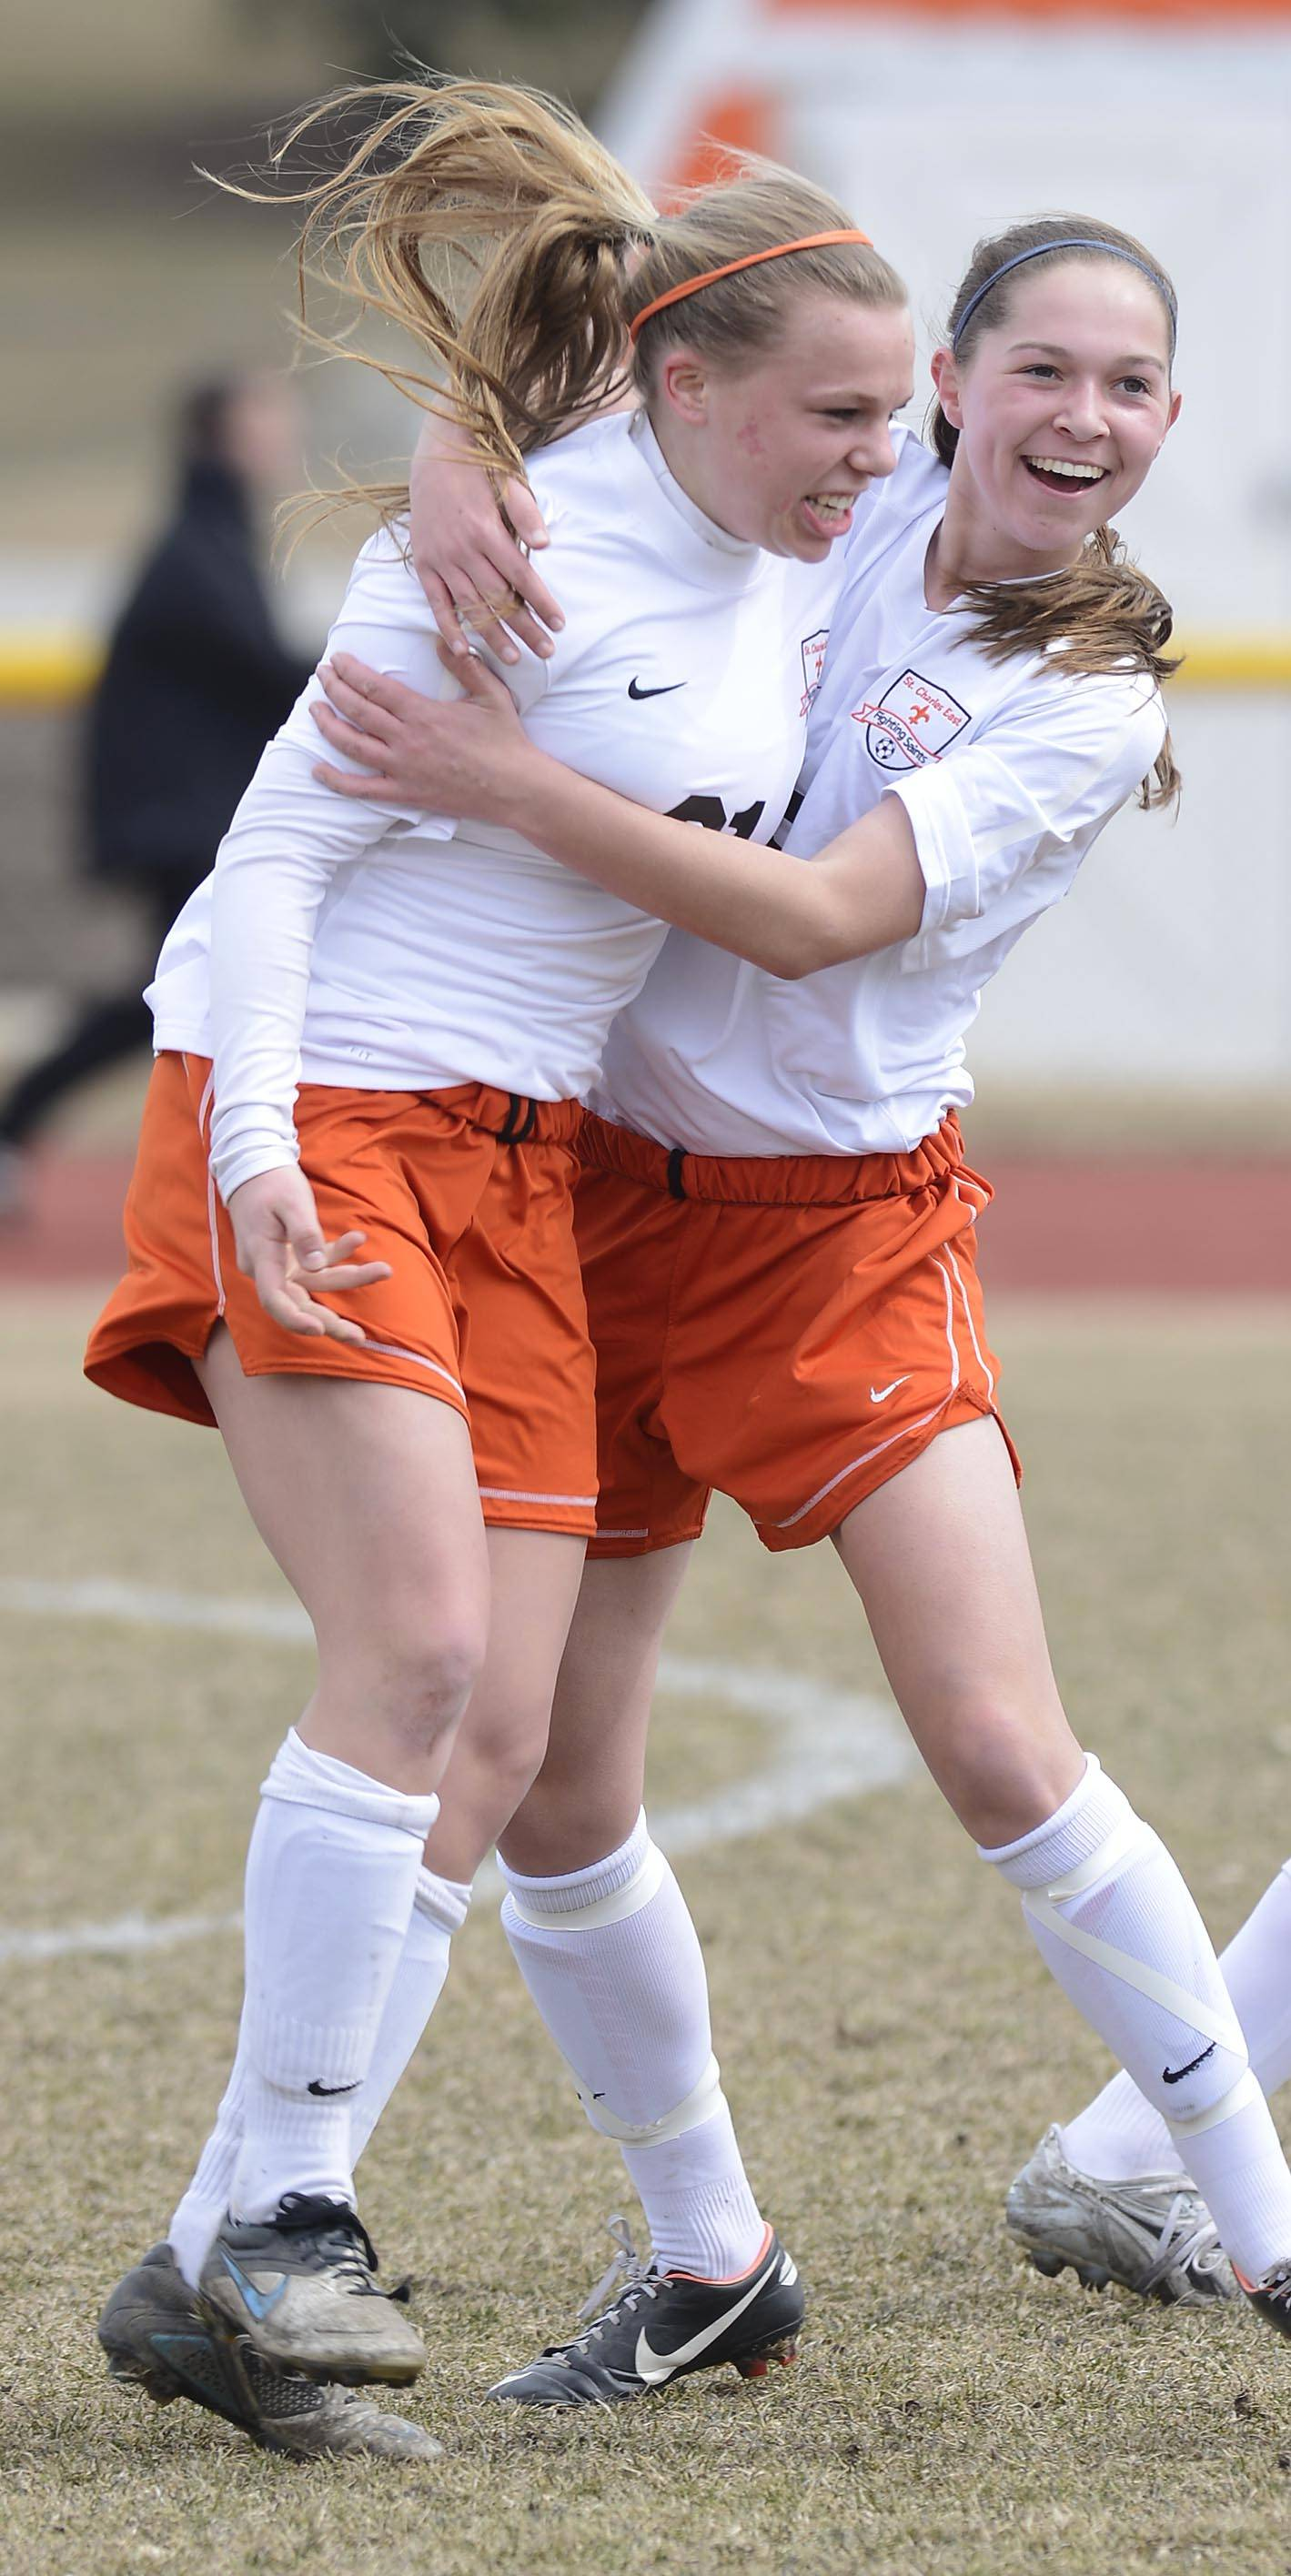 JOE LEWNARD/jlewnard@dailyherald.com ¬ St. Charles East's Amanda Hilton, left, celebrates her goal with teammate Darcy Cunningham, which was the Saint's third goal in just over three minutes of play against Batavia Saturday.